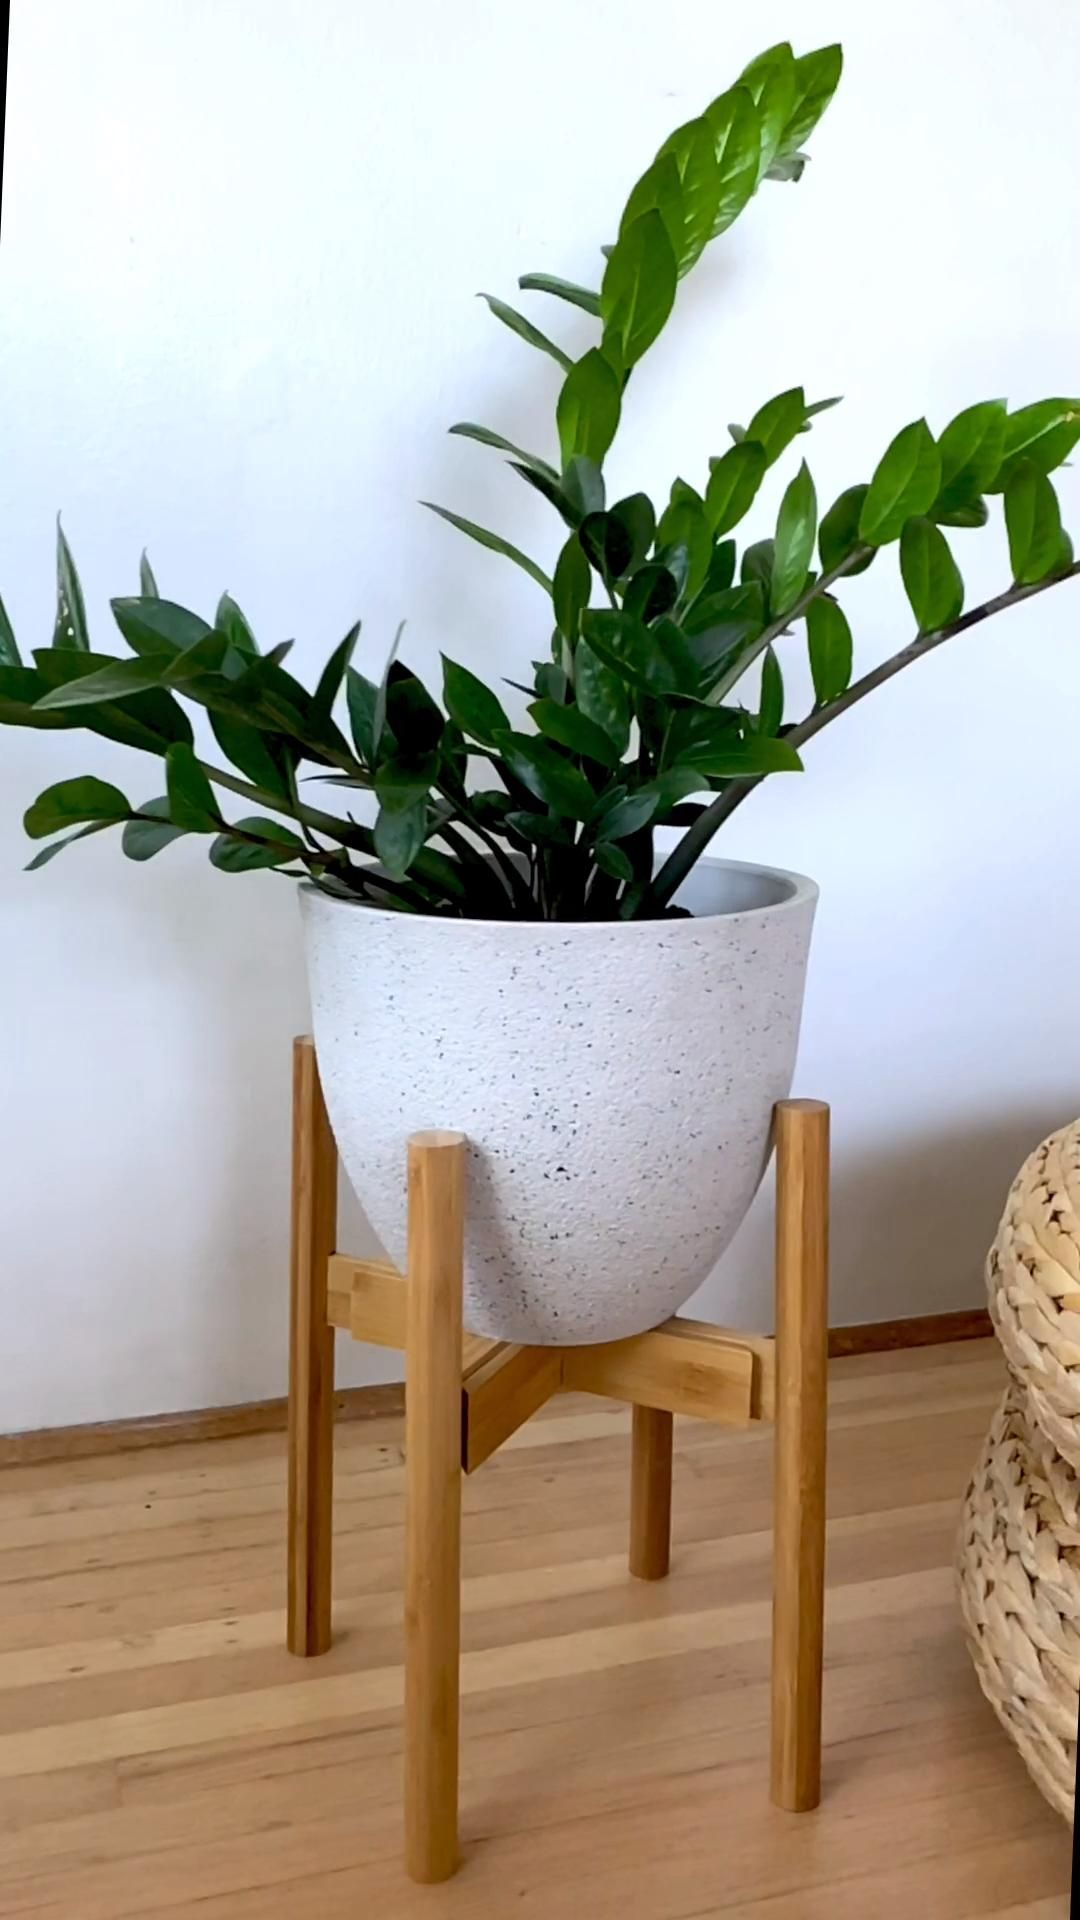 Repotting this ZZ Plant in a recycled plastic plan